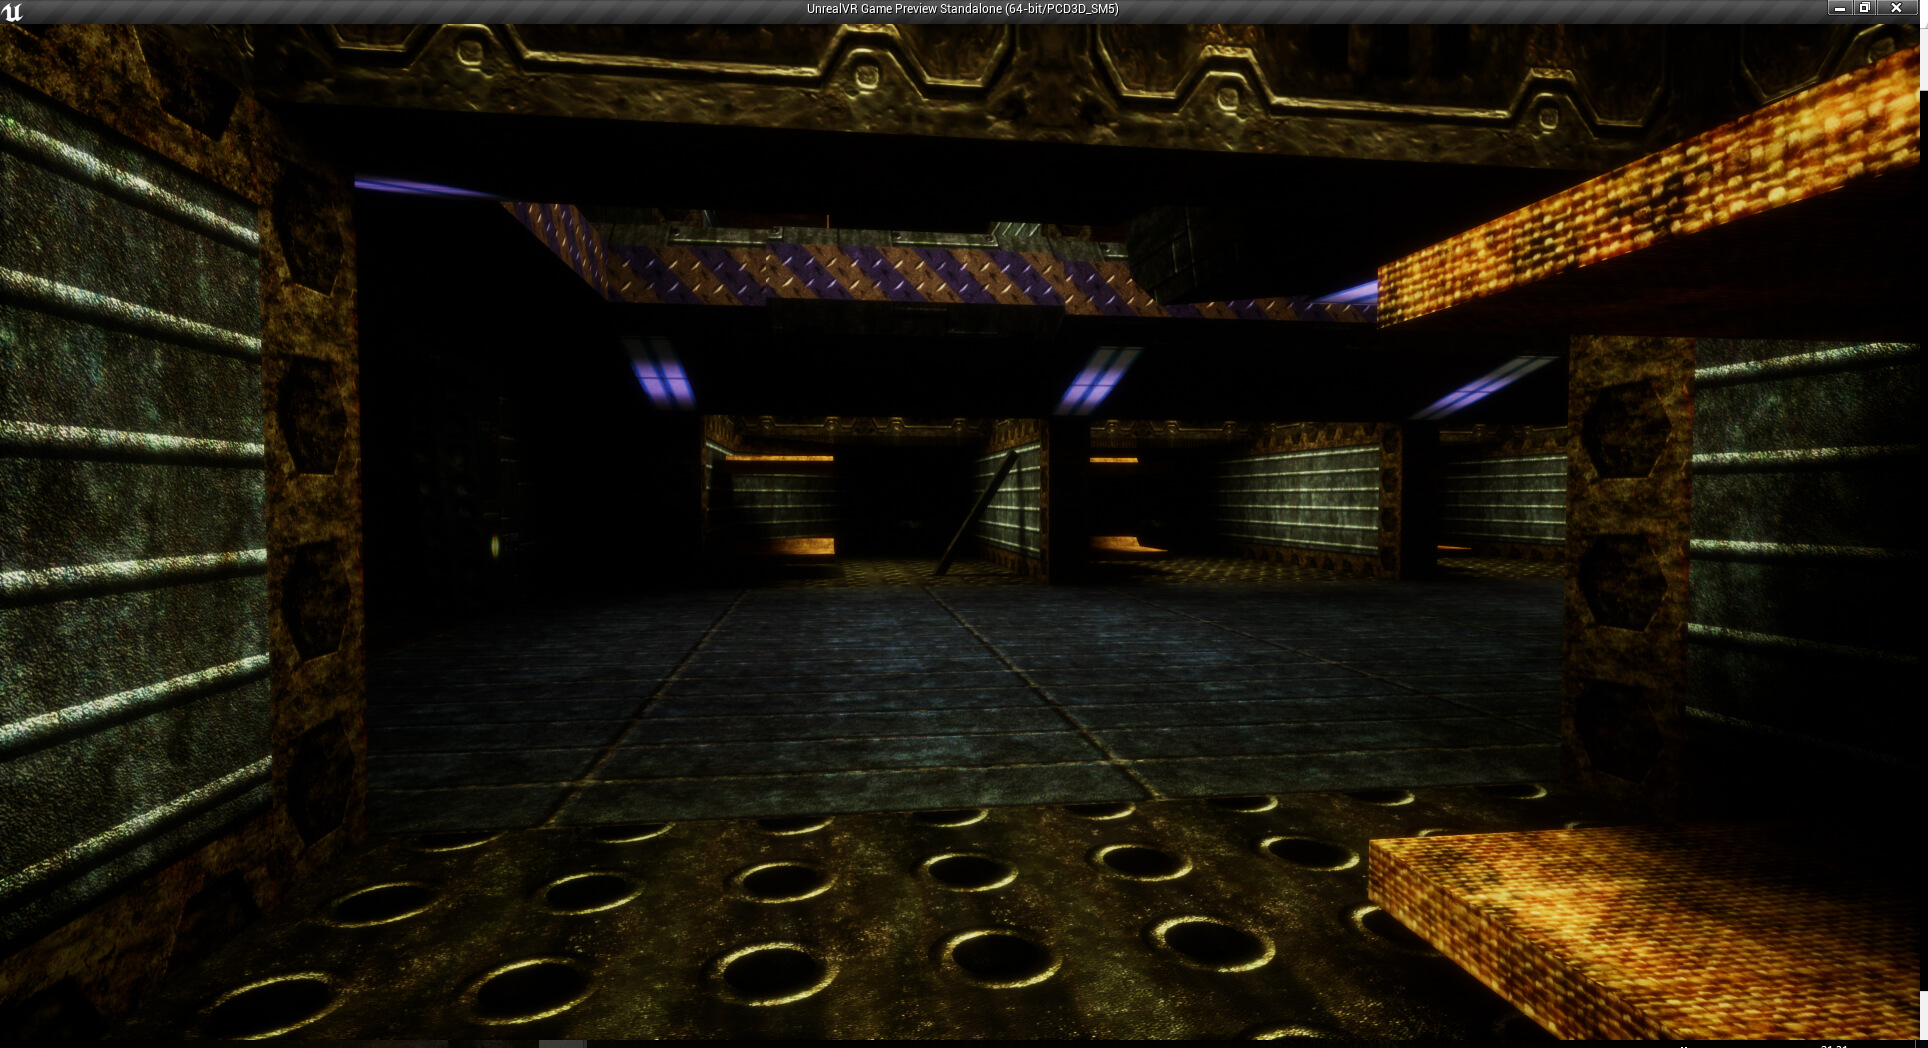 Unreal VR brings the classic 1998 Unreal game to Unreal